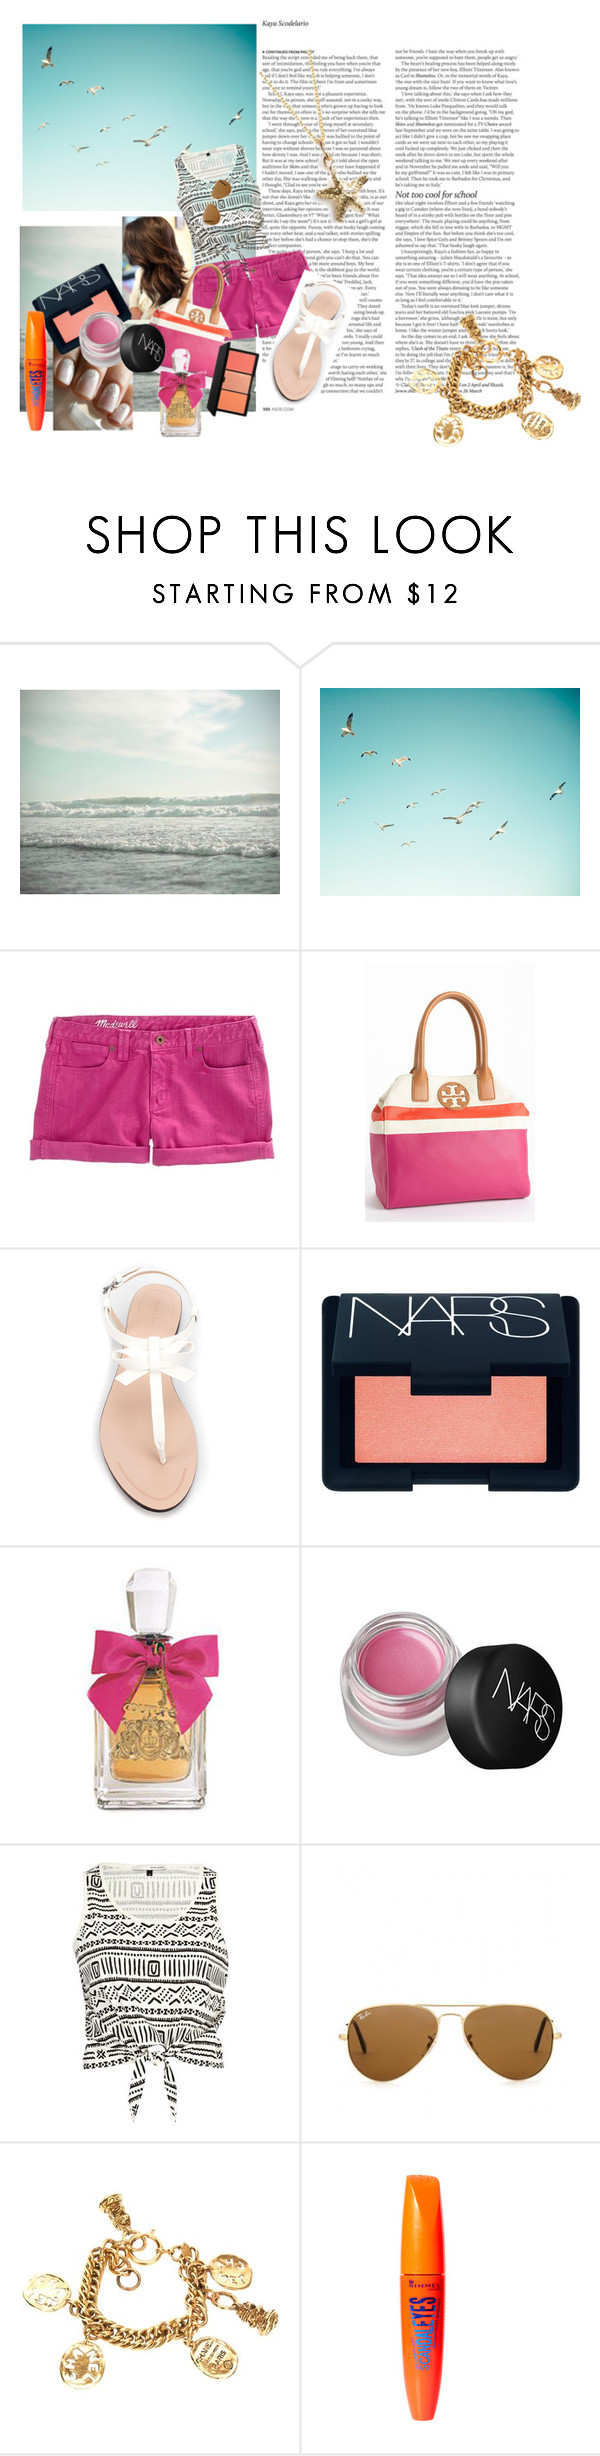 """""""Summer's Eve"""" by cassie142 ❤ liked on Polyvore featuring ASOS, Madewell, Tory Burch, Essie, Zara, NARS Cosmetics, Juicy Couture, River Island, Ray-Ban and Chanel"""